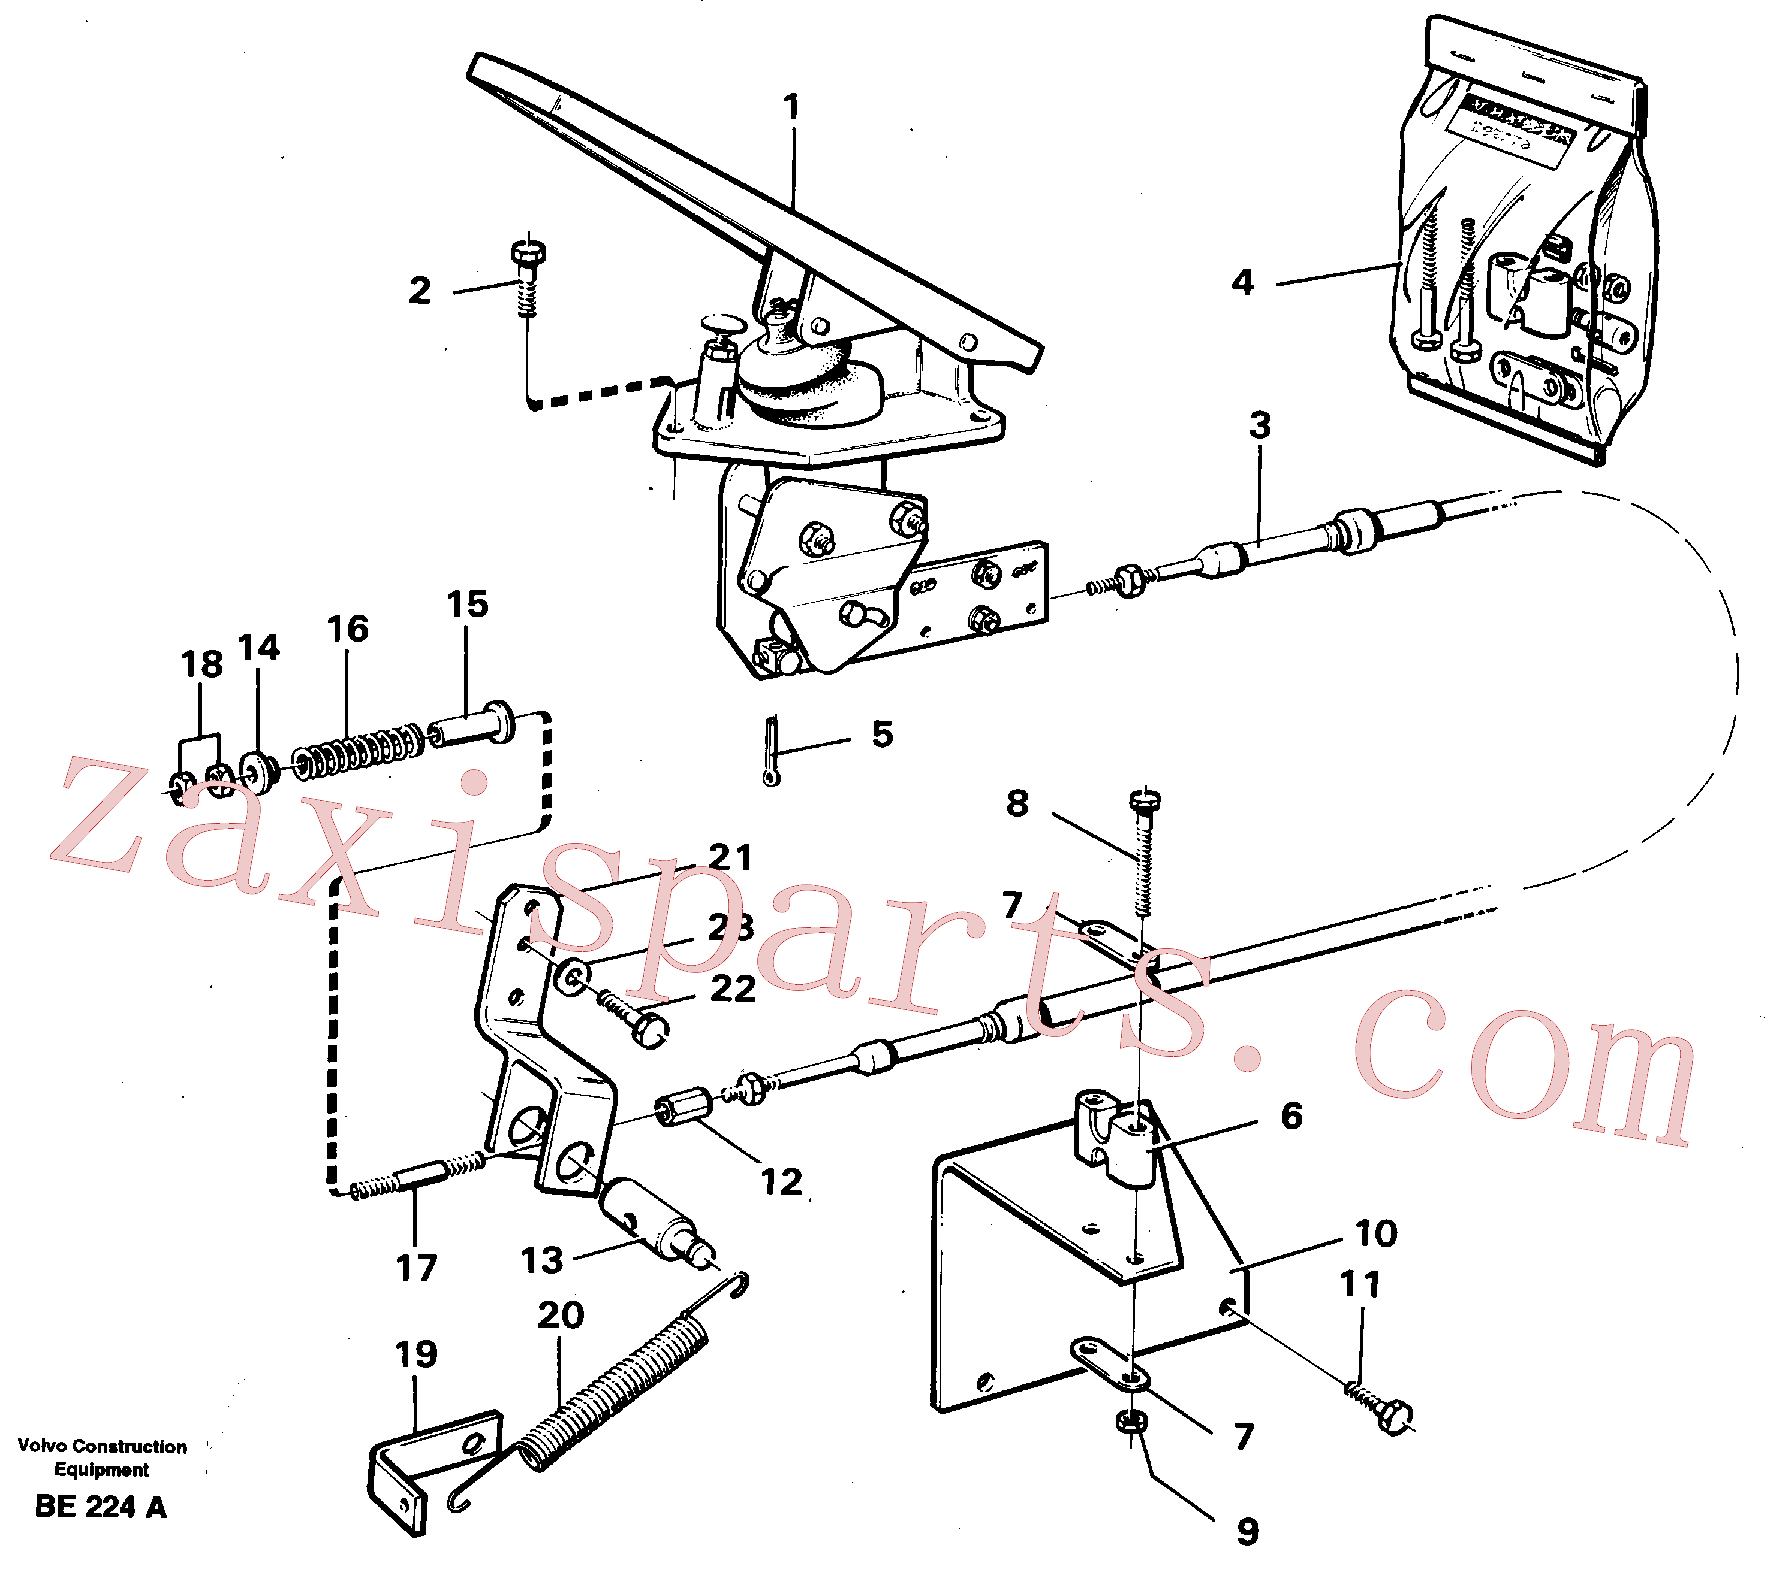 VOE13940133 for Volvo Governor controls.(BE224A assembly)